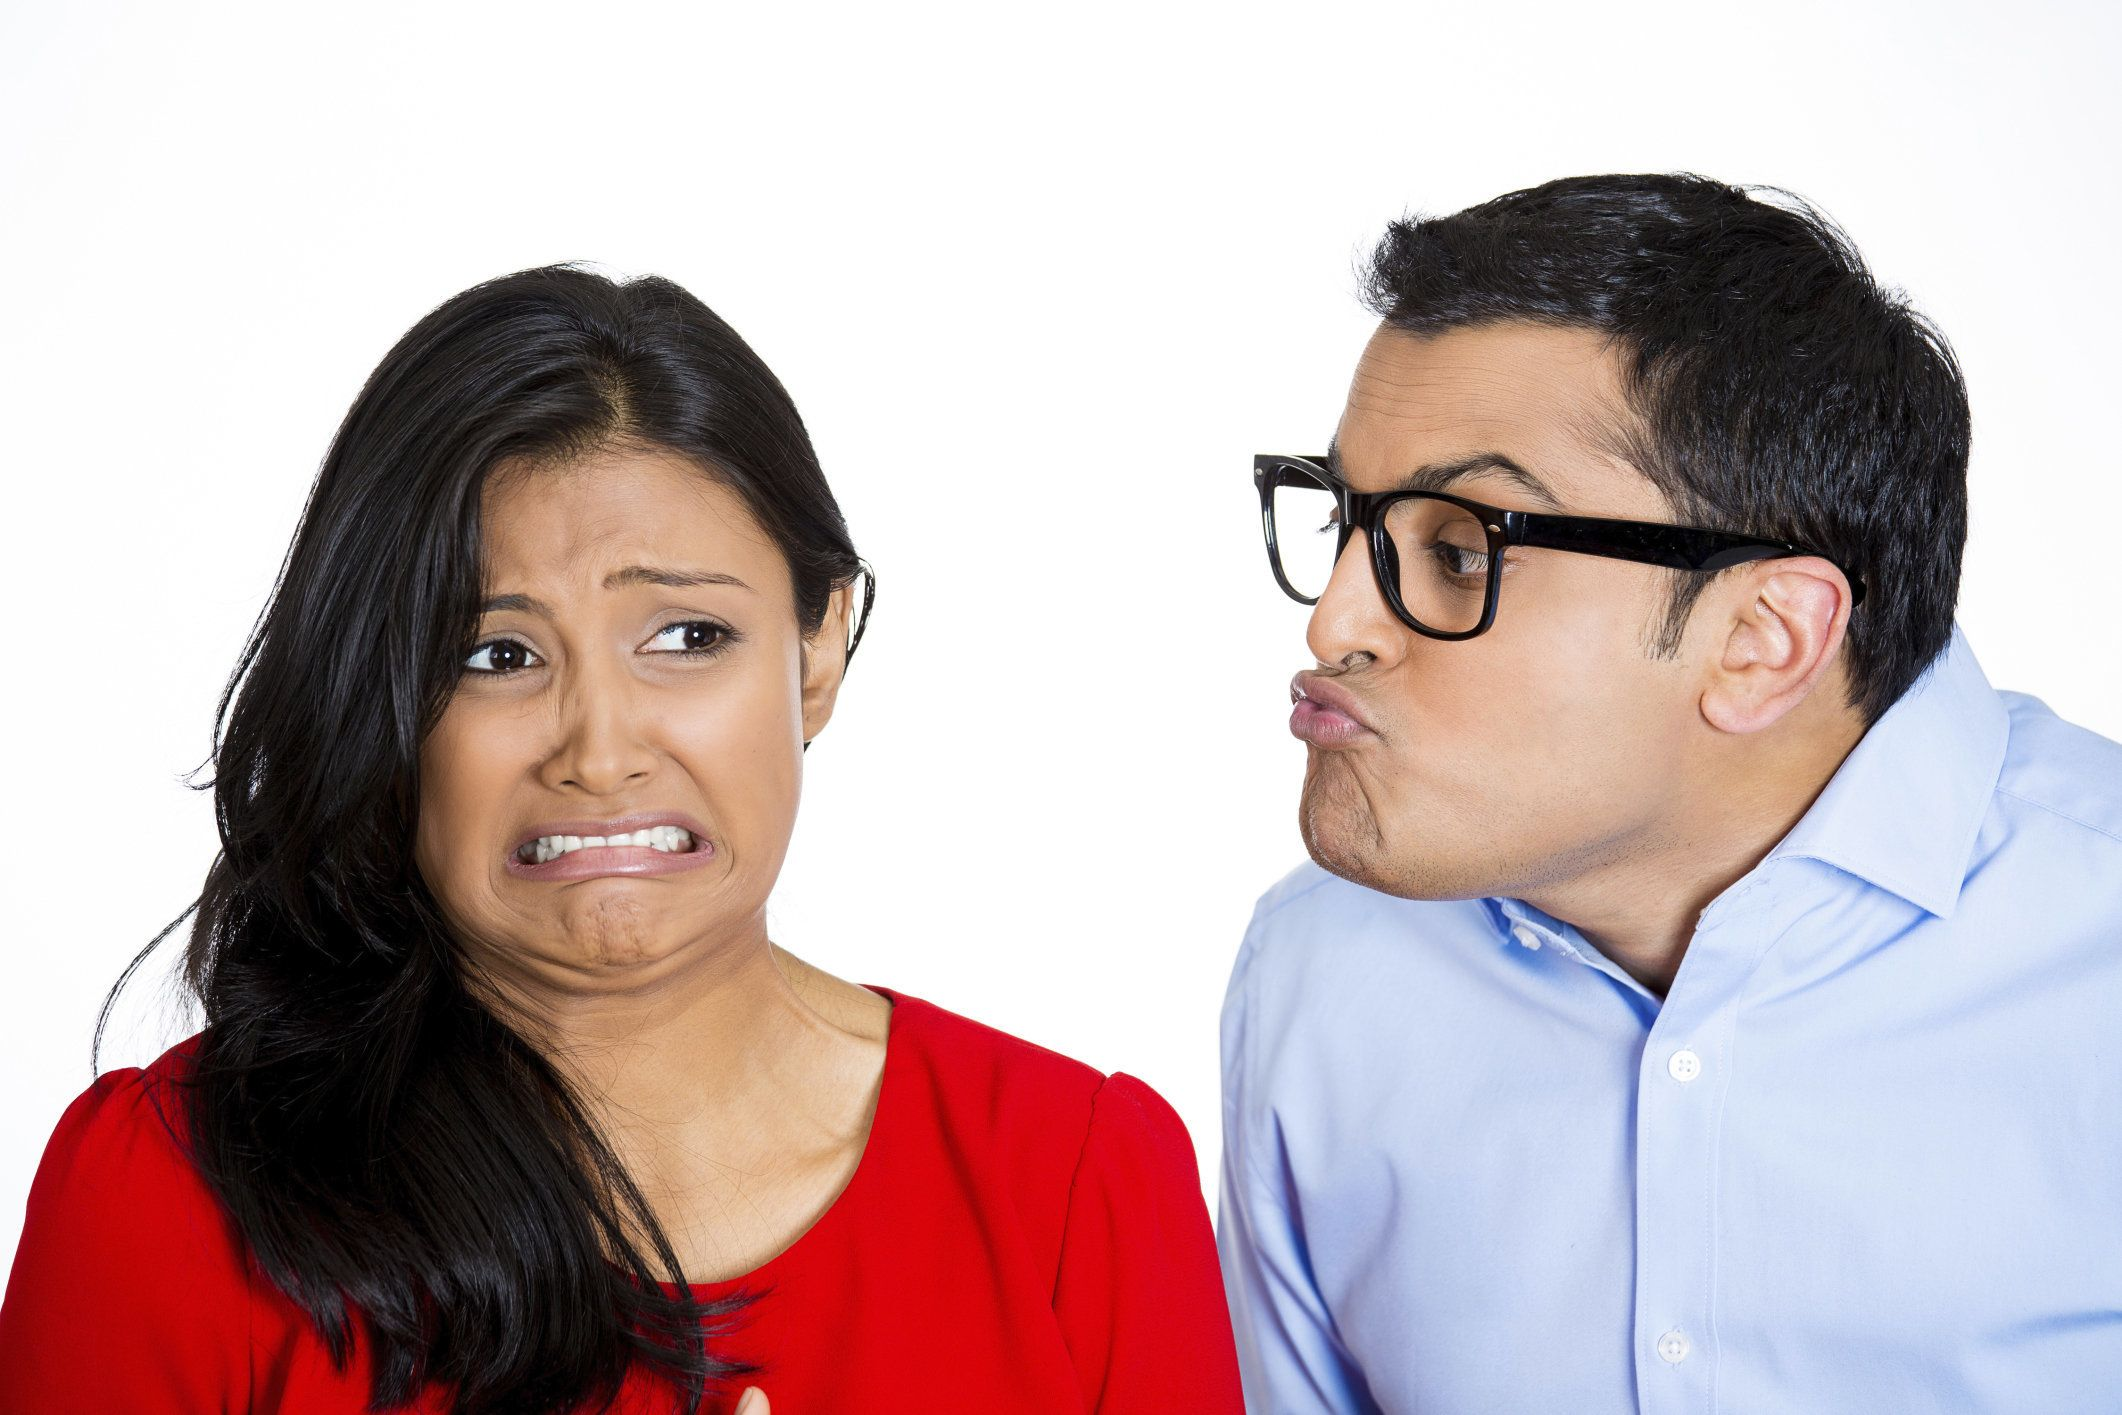 Closeup portrait of nerdy young man with big black glasses trying to kiss snobby woman who is grossed out, disgusted funny smirk on face, isolated white background. Negative emotion facial expression